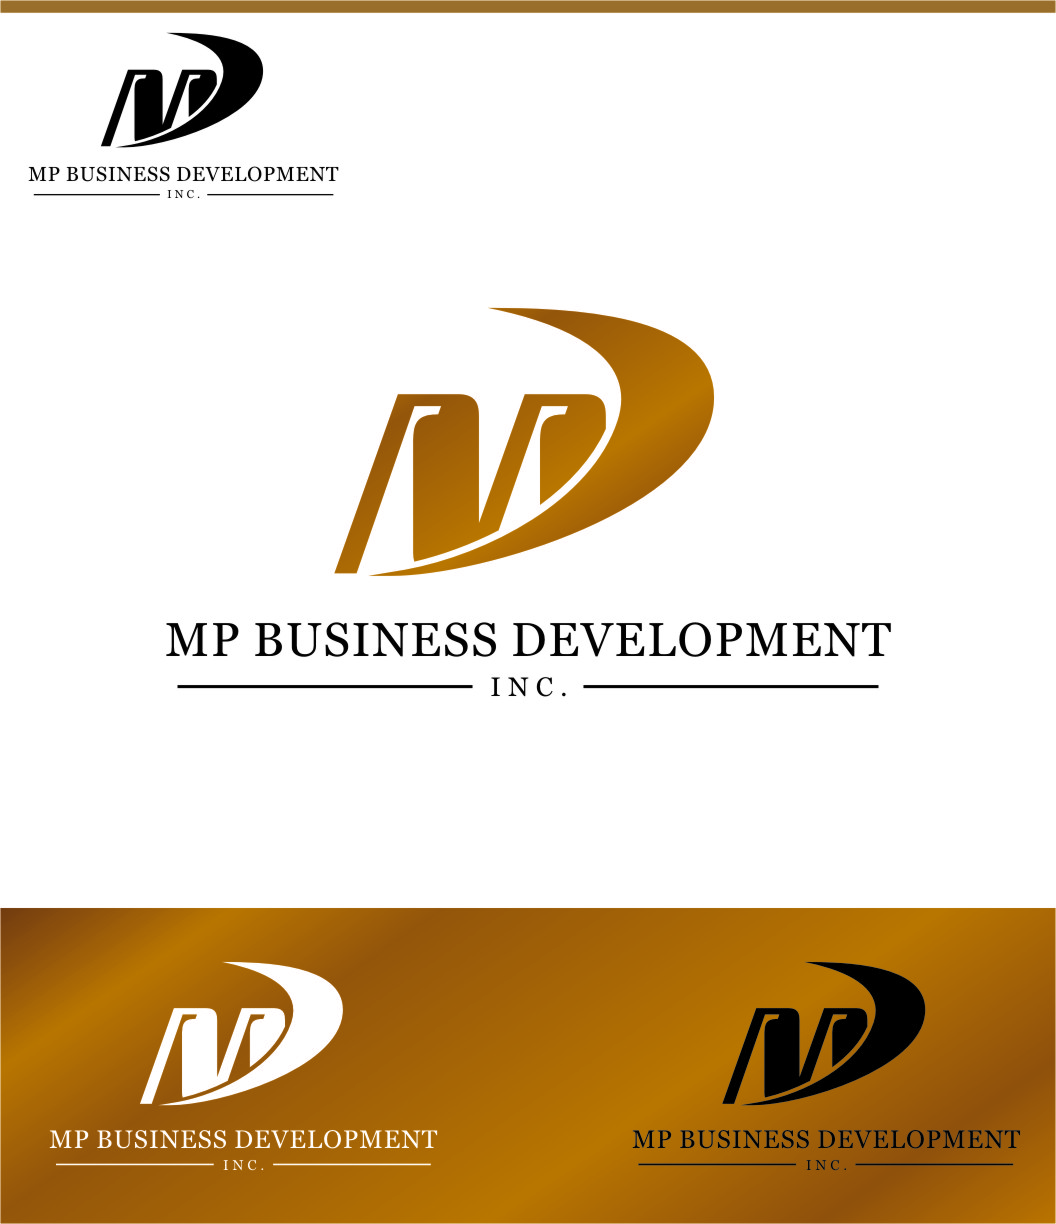 Logo Design by RasYa Muhammad Athaya - Entry No. 137 in the Logo Design Contest MP Business Development Inc. Logo Design.